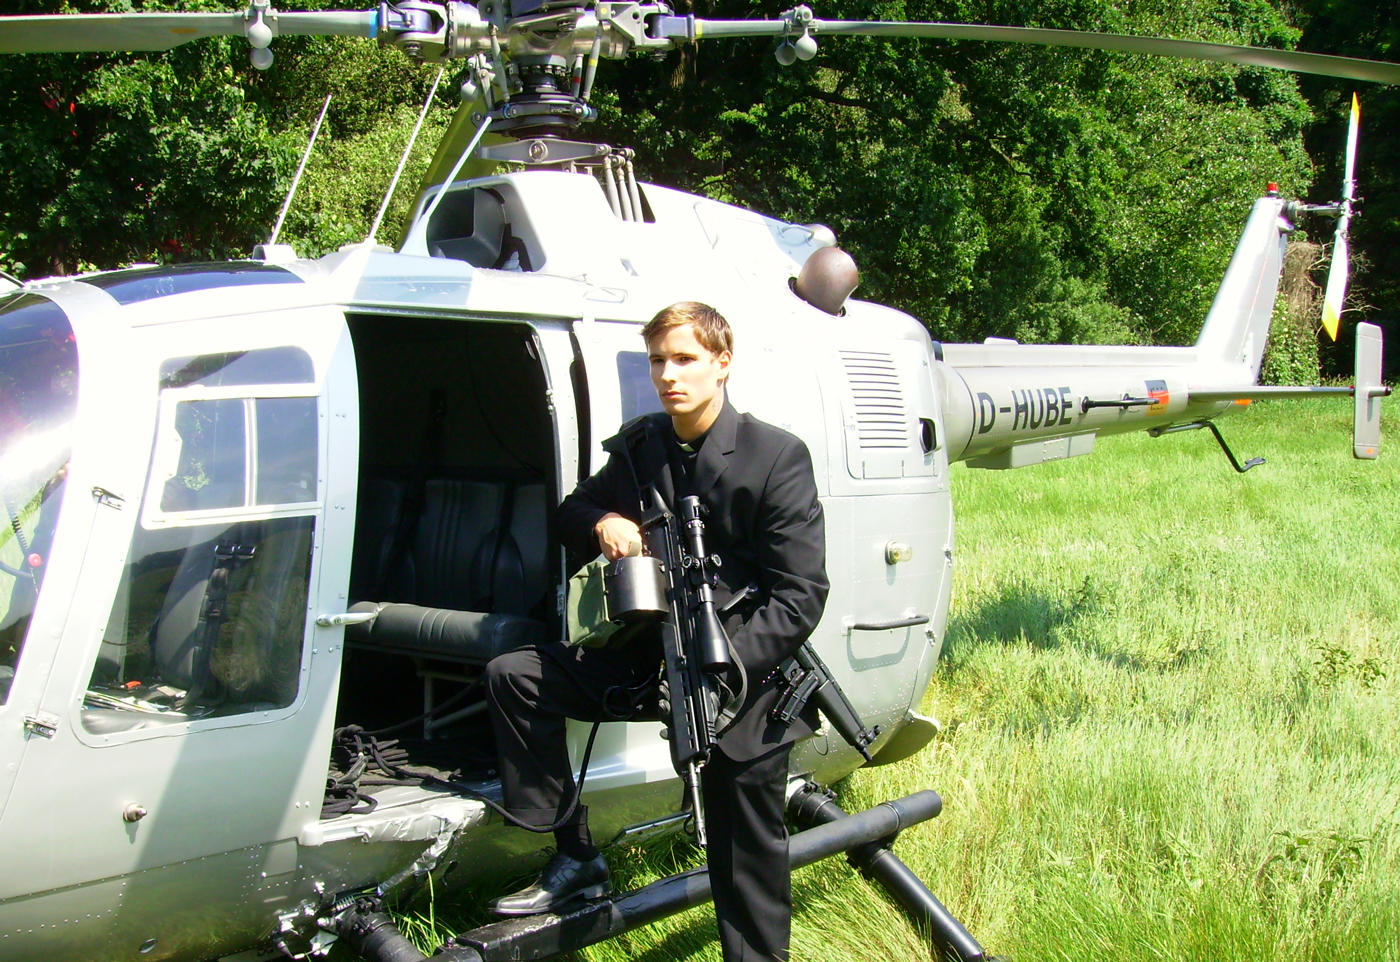 Martin Goeres, Combat Shooting, Stunt, Rappeling, Helicopter, Shooting